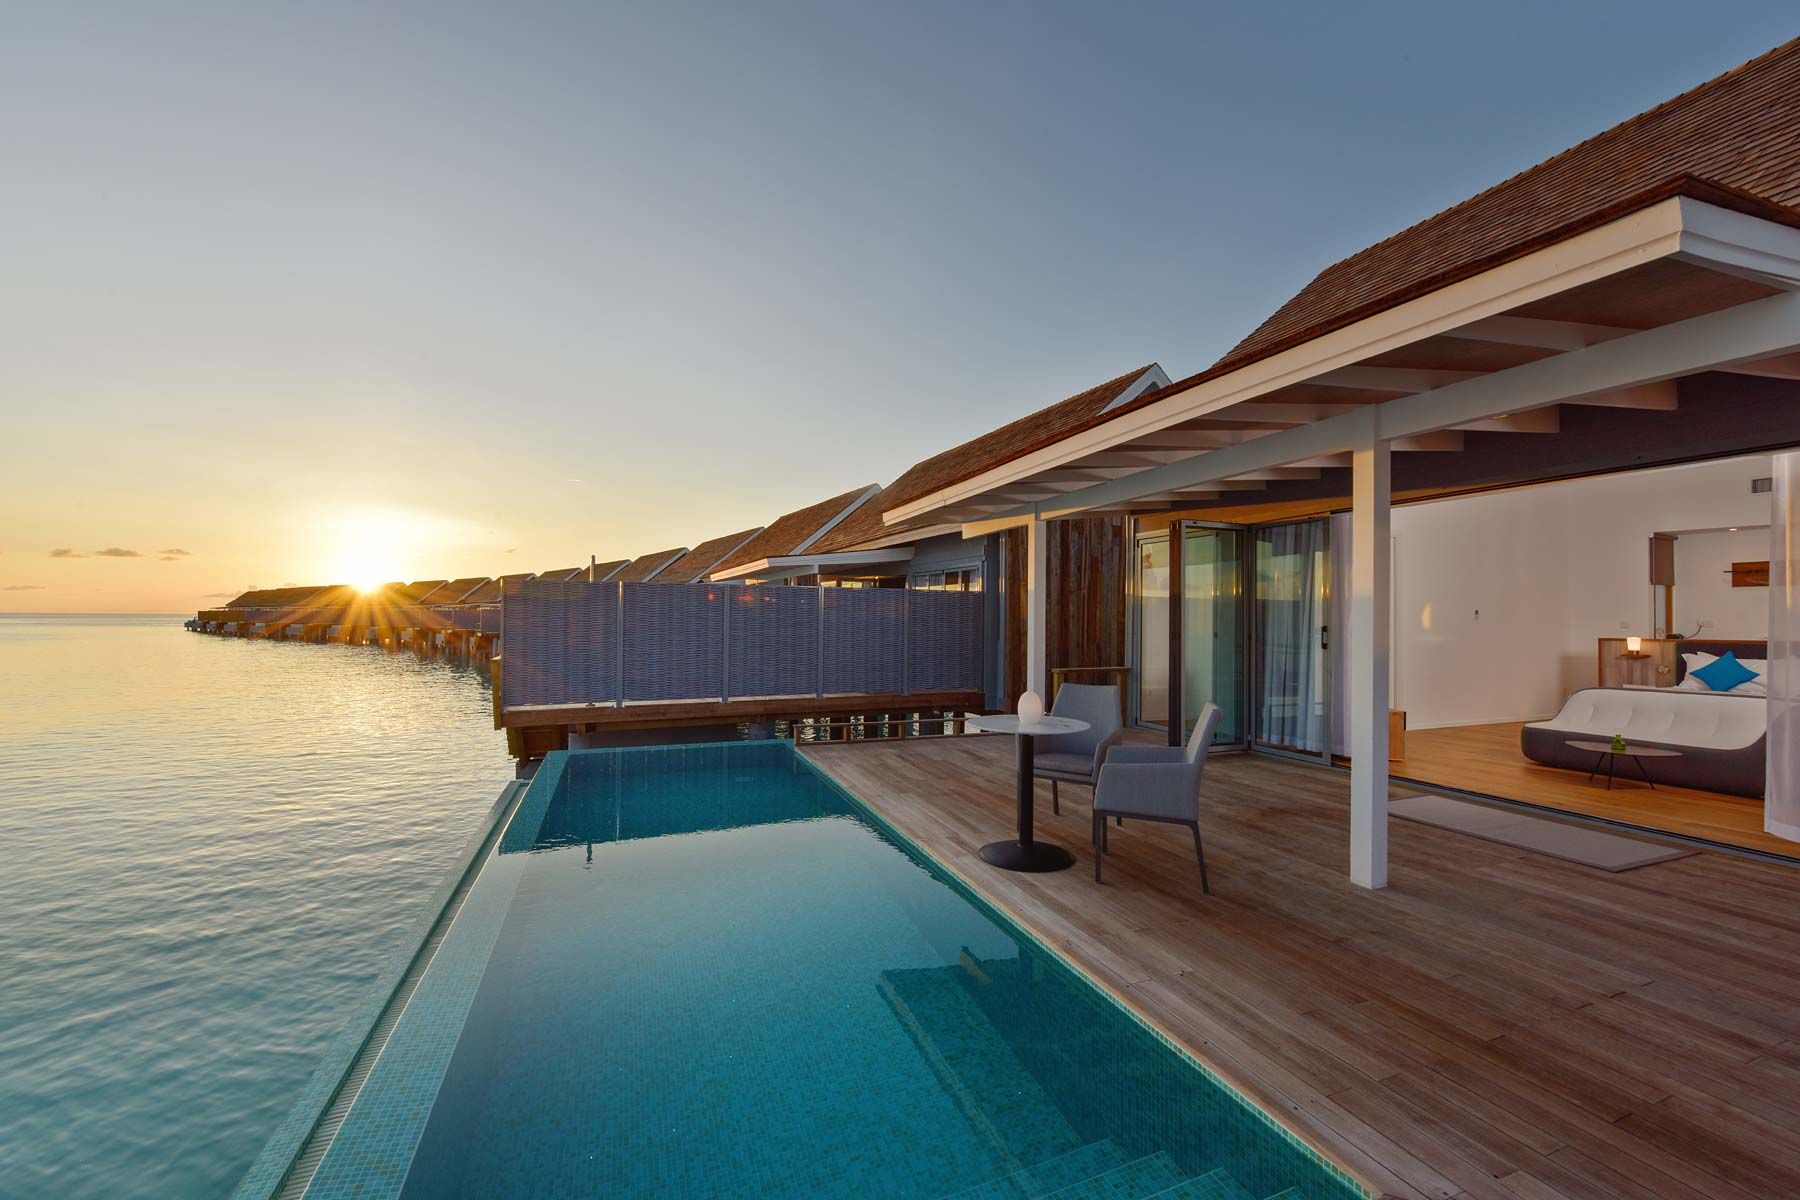 All-inclusive resorts gain steam among APAC travellers